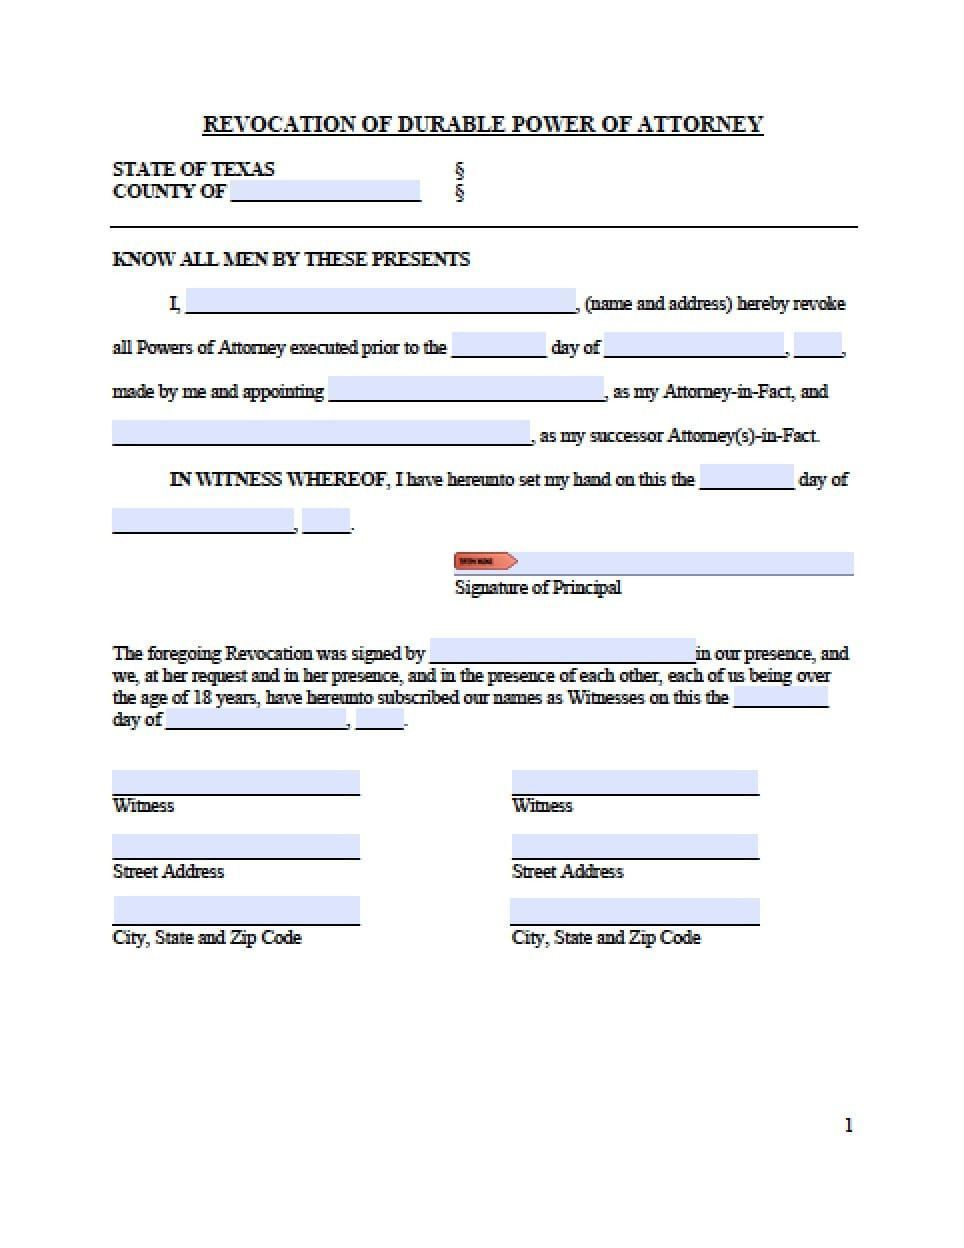 Power Of Attorney Template For Children Very Good Texas Revocation Power Of Attorney Form Pow Power Of Attorney Form Power Of Attorney Attorneys